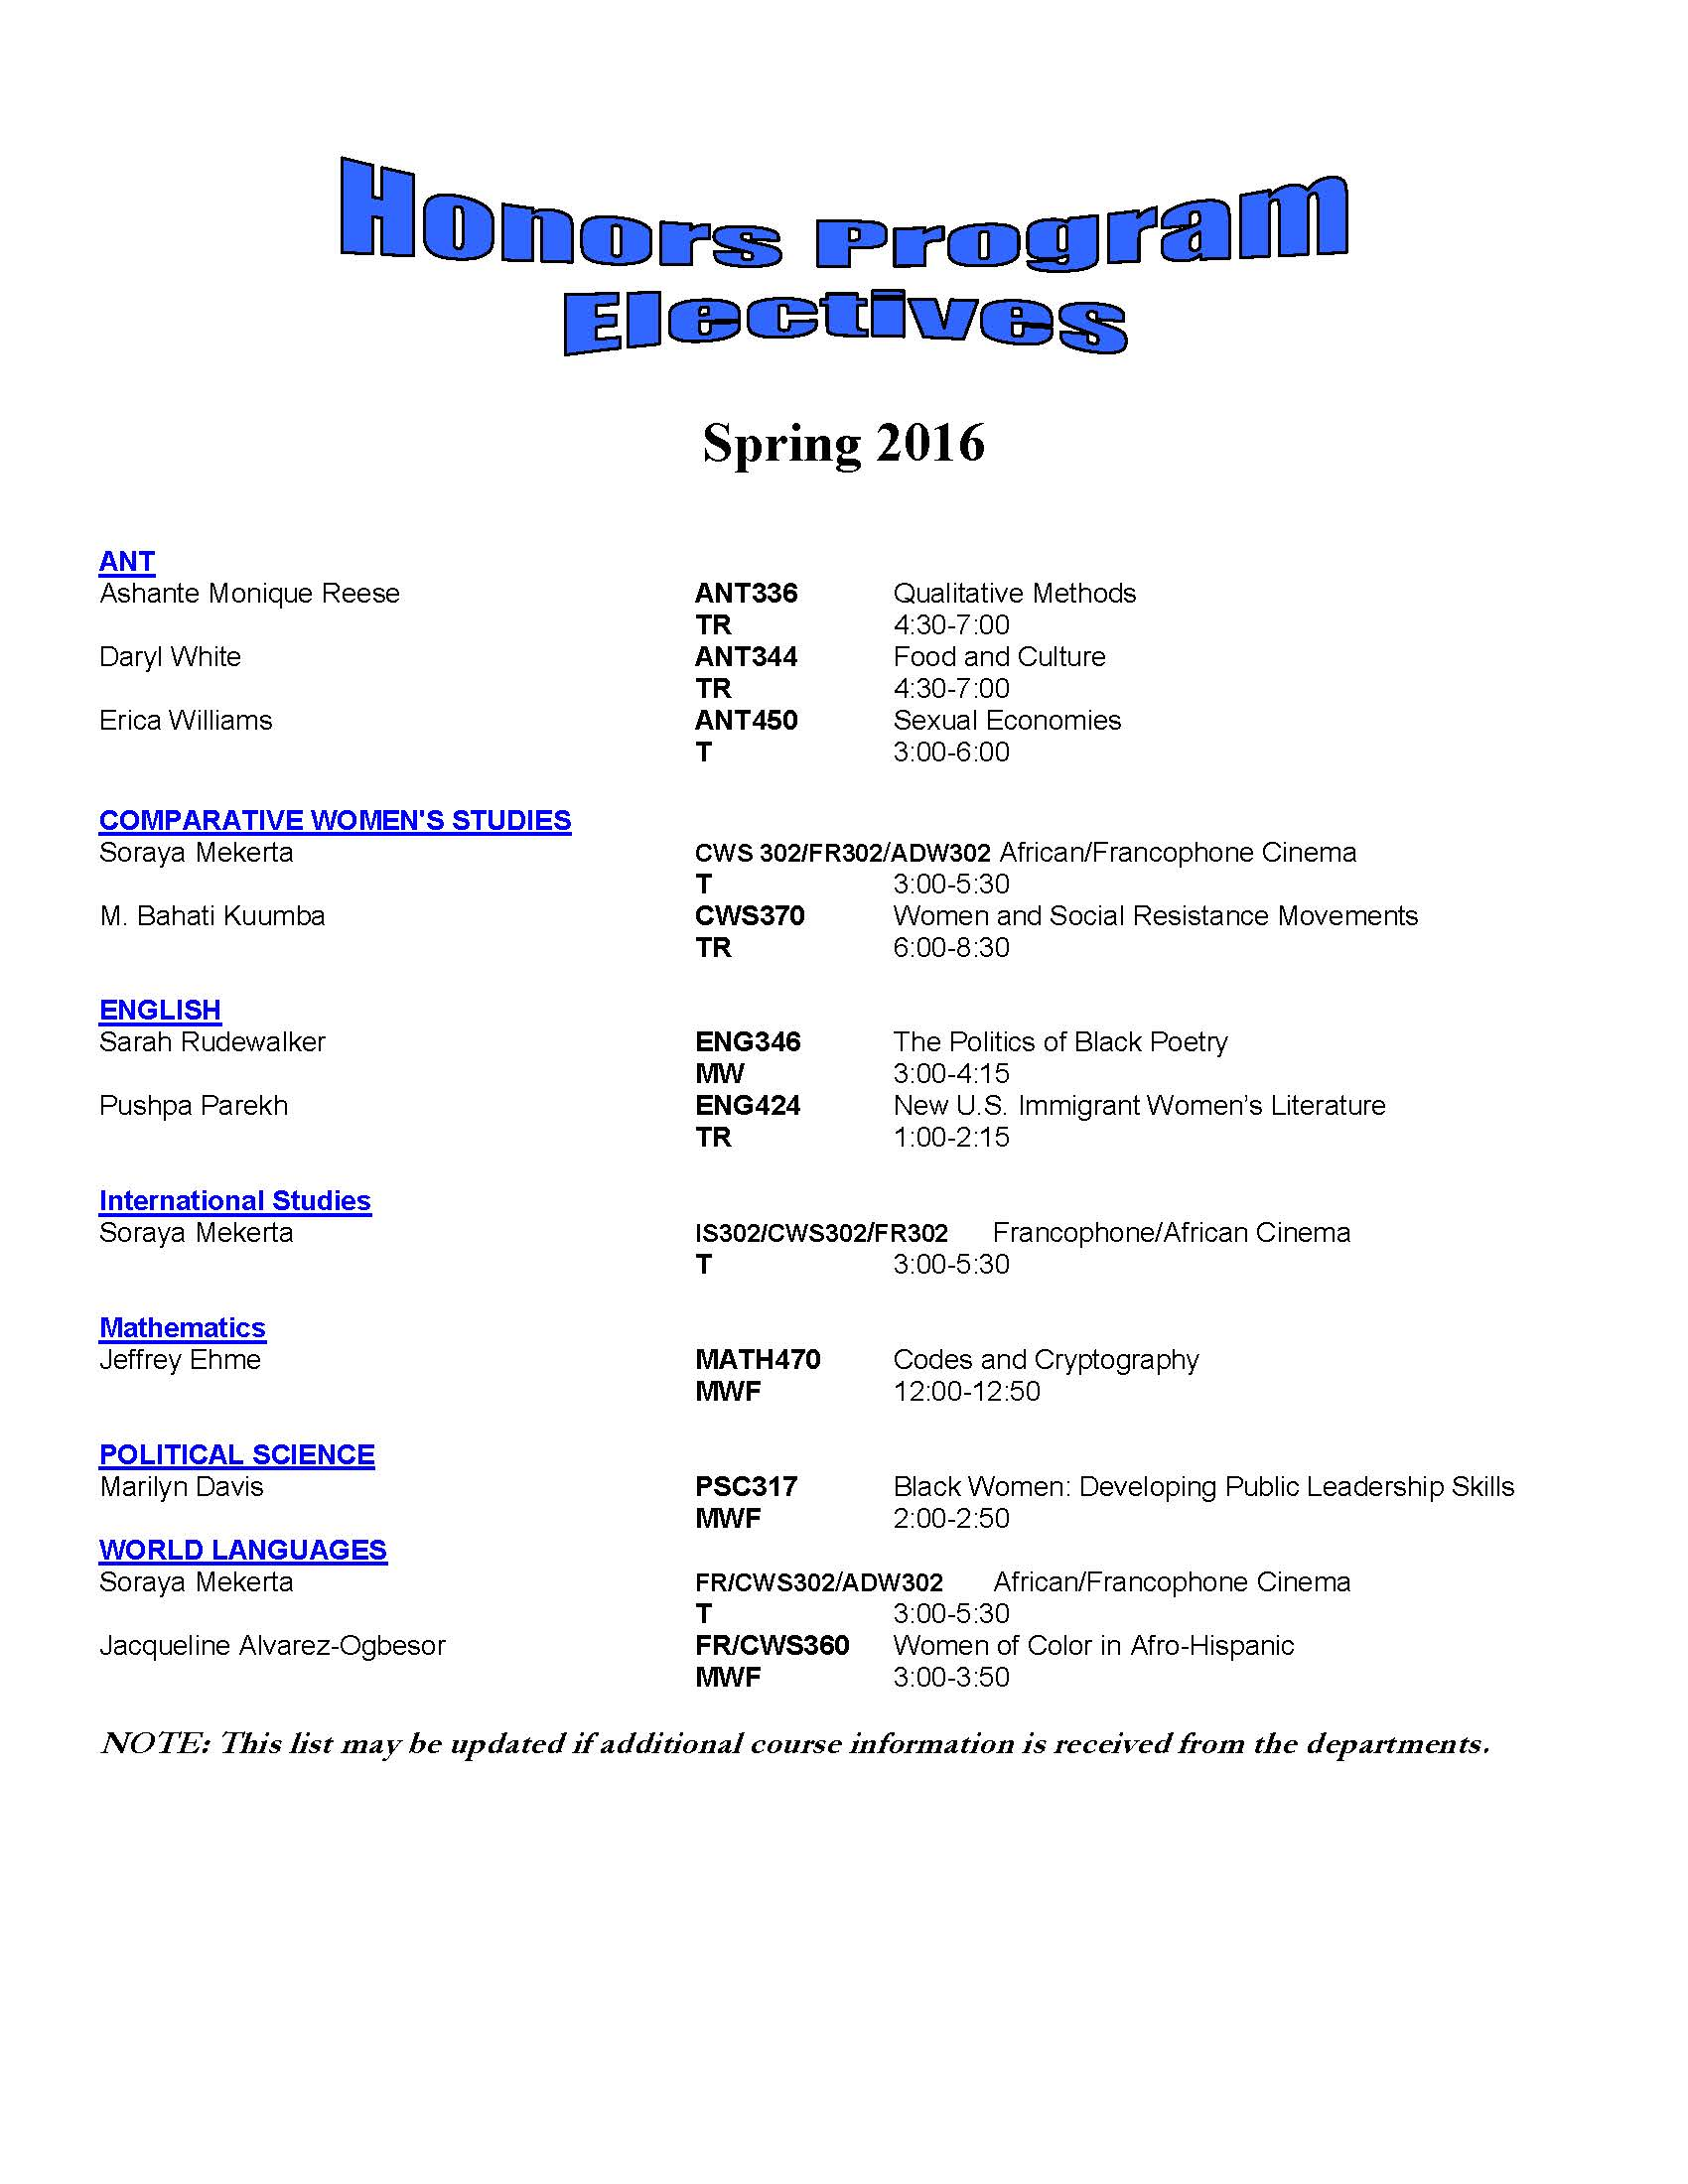 Spring 2016 Honors Program Electives